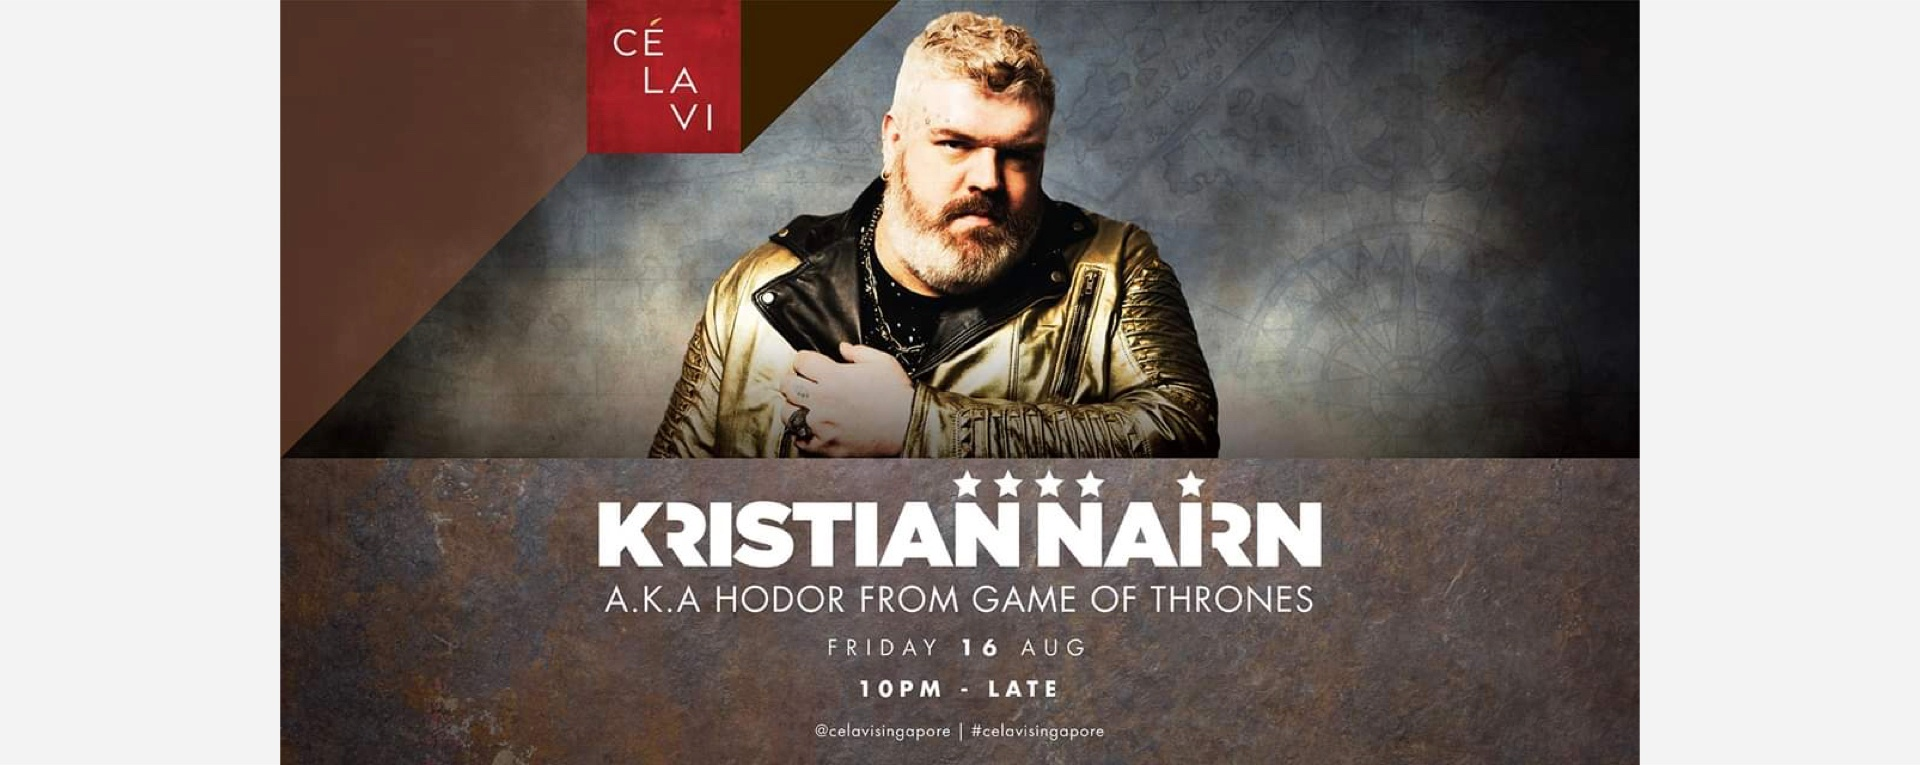 CÉ LA VI presents Kristian Nairn AKA Hodor From Game Of Thrones [CANCELLED]